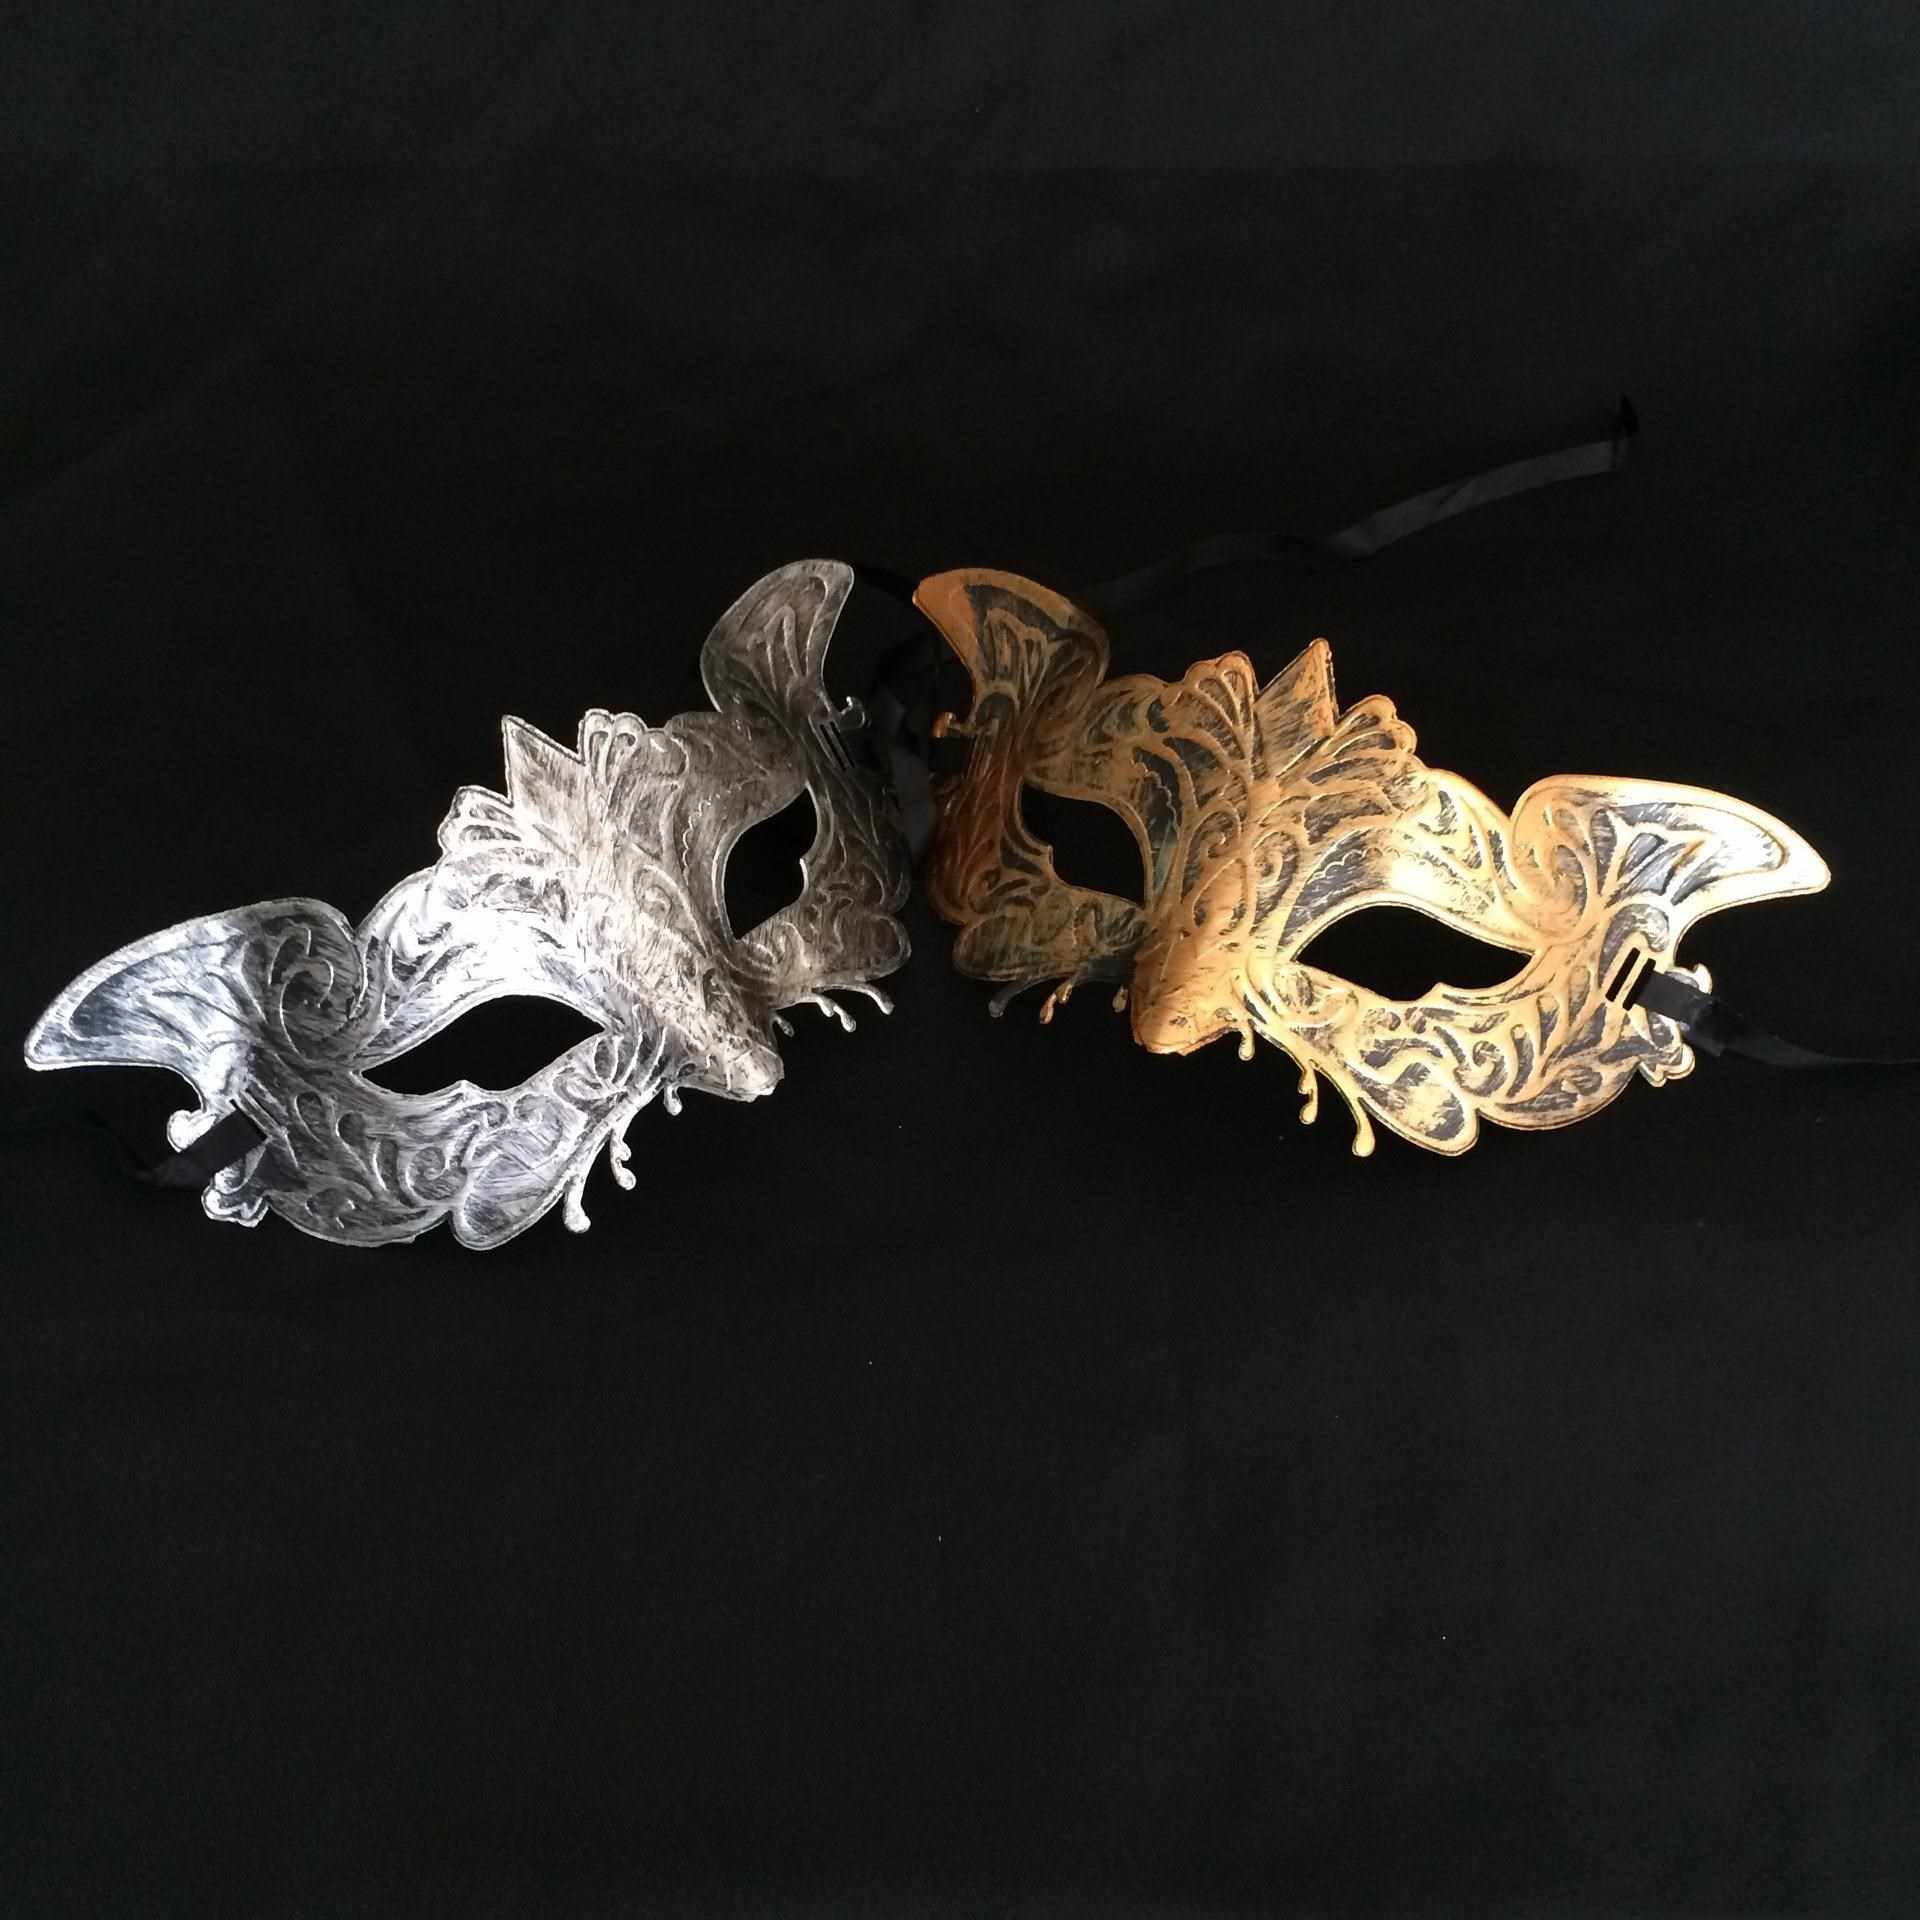 Gold Gras Mardi Available Mask Children Masks More silver Party Halloween And Colors Woman Man Retro Masquerade zltrimmer007 YSkhE